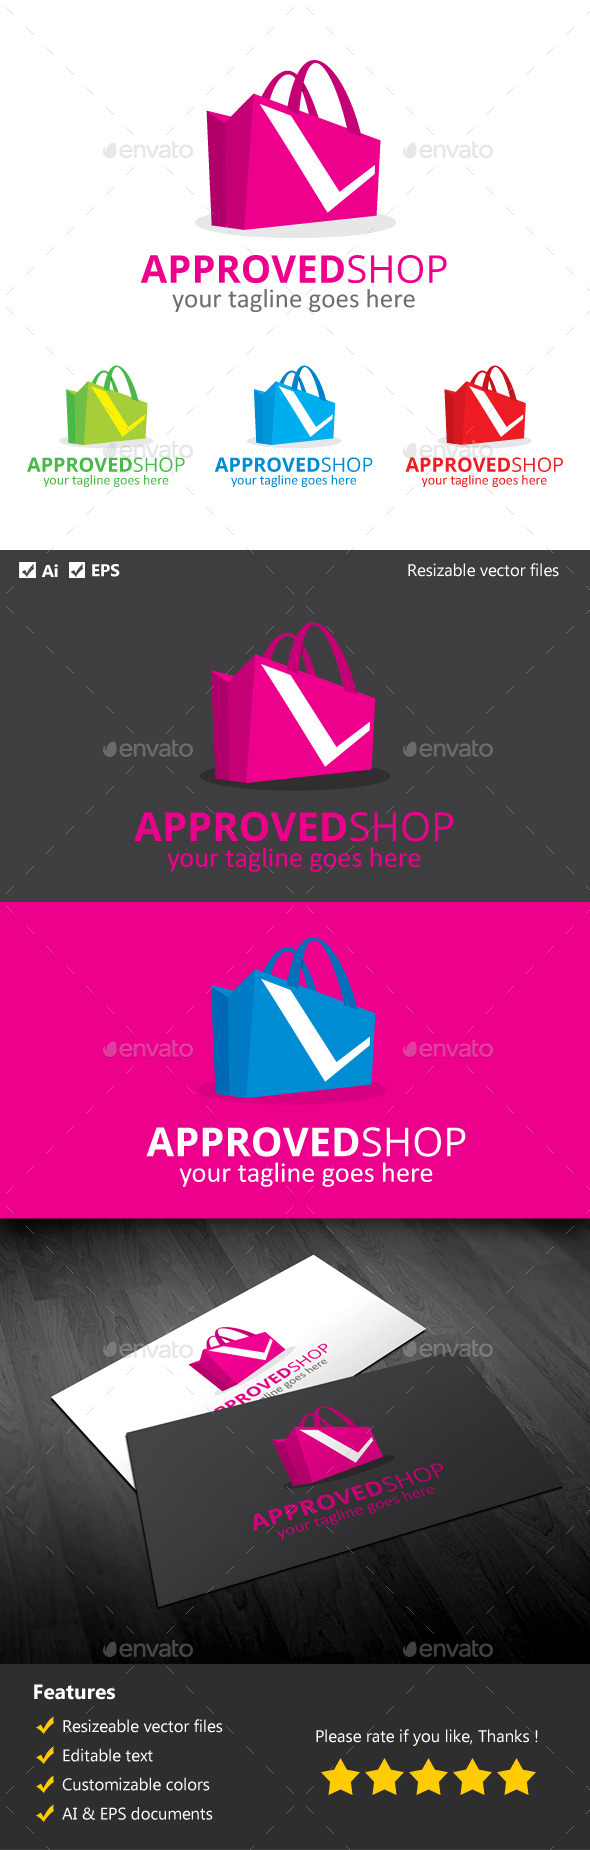 GraphicRiver Approved Shop 10065779